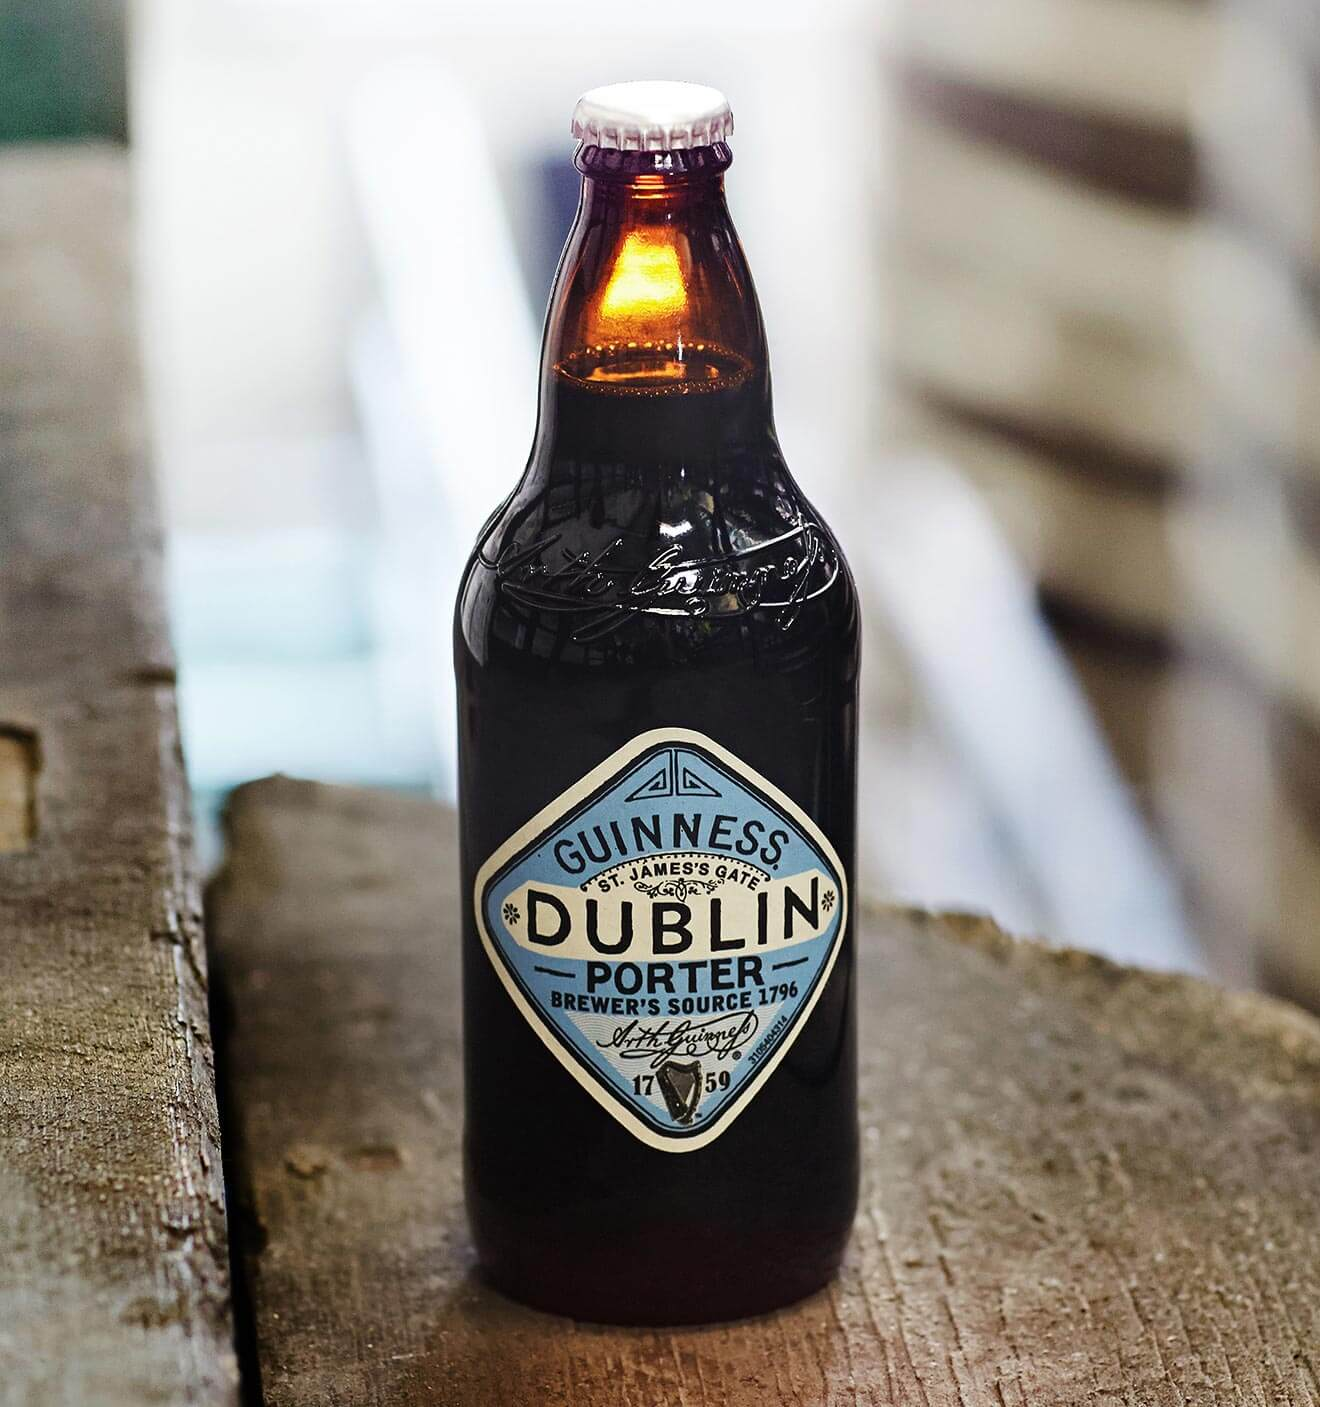 Dublin Porter from Guinness, beer news